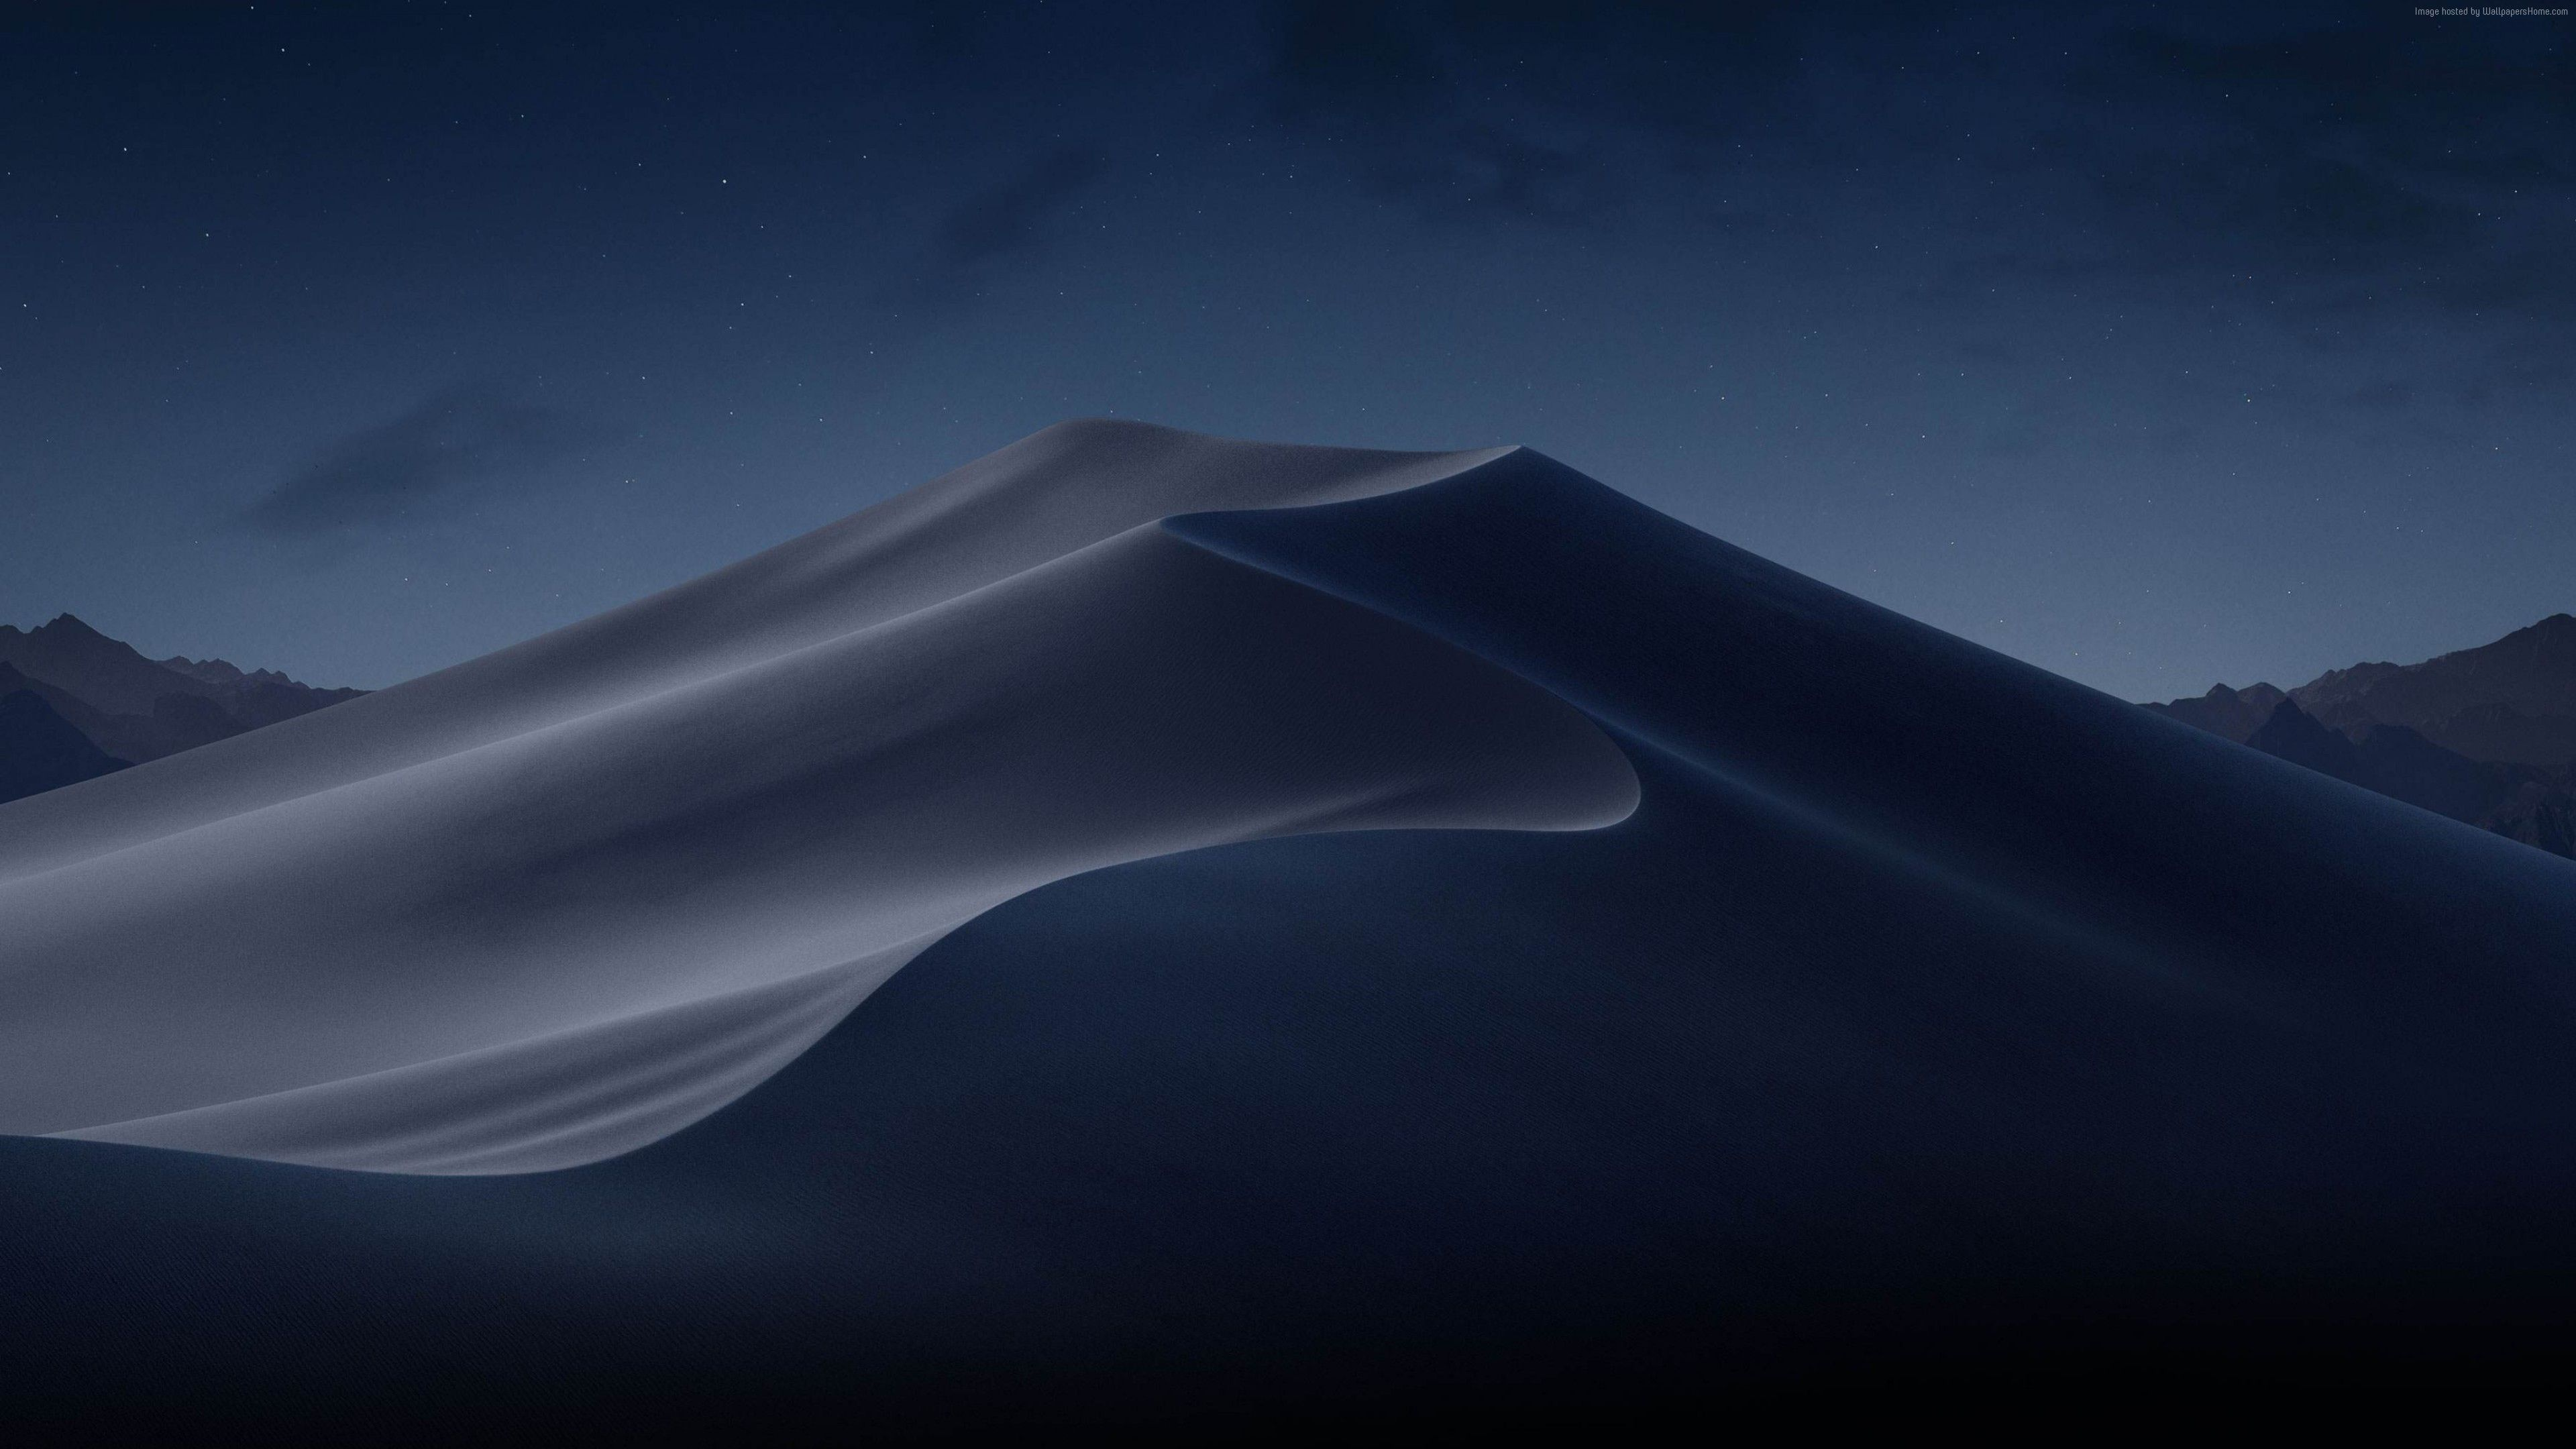 Wallpaper macOS Mojave, Night, Dunes, WWDC 2018, 4K, OS